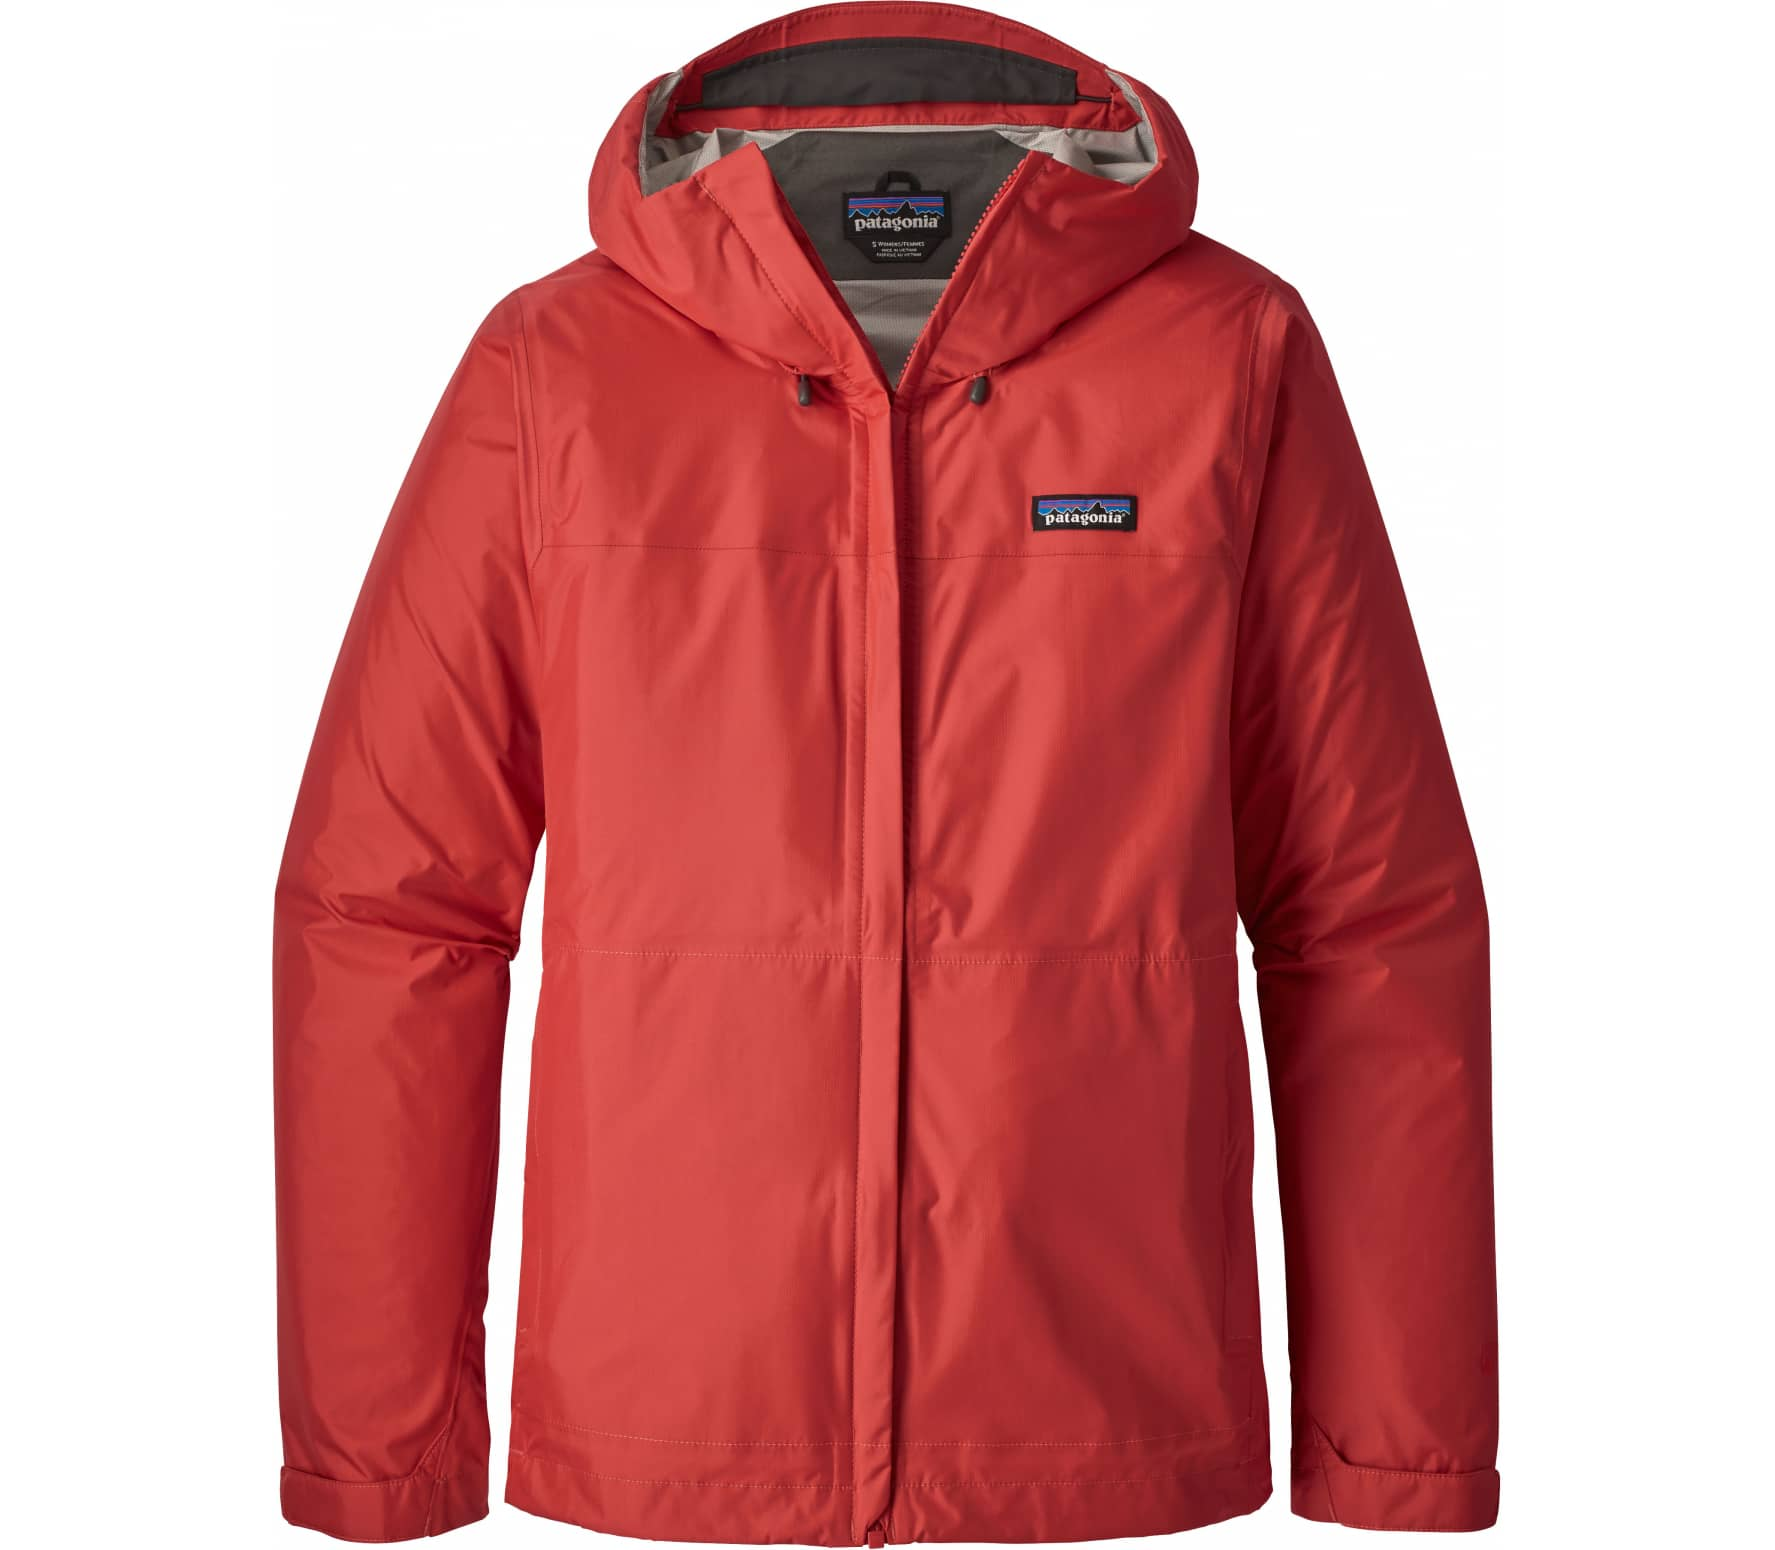 Patagonia - Torrentshell women's raincoat (red)